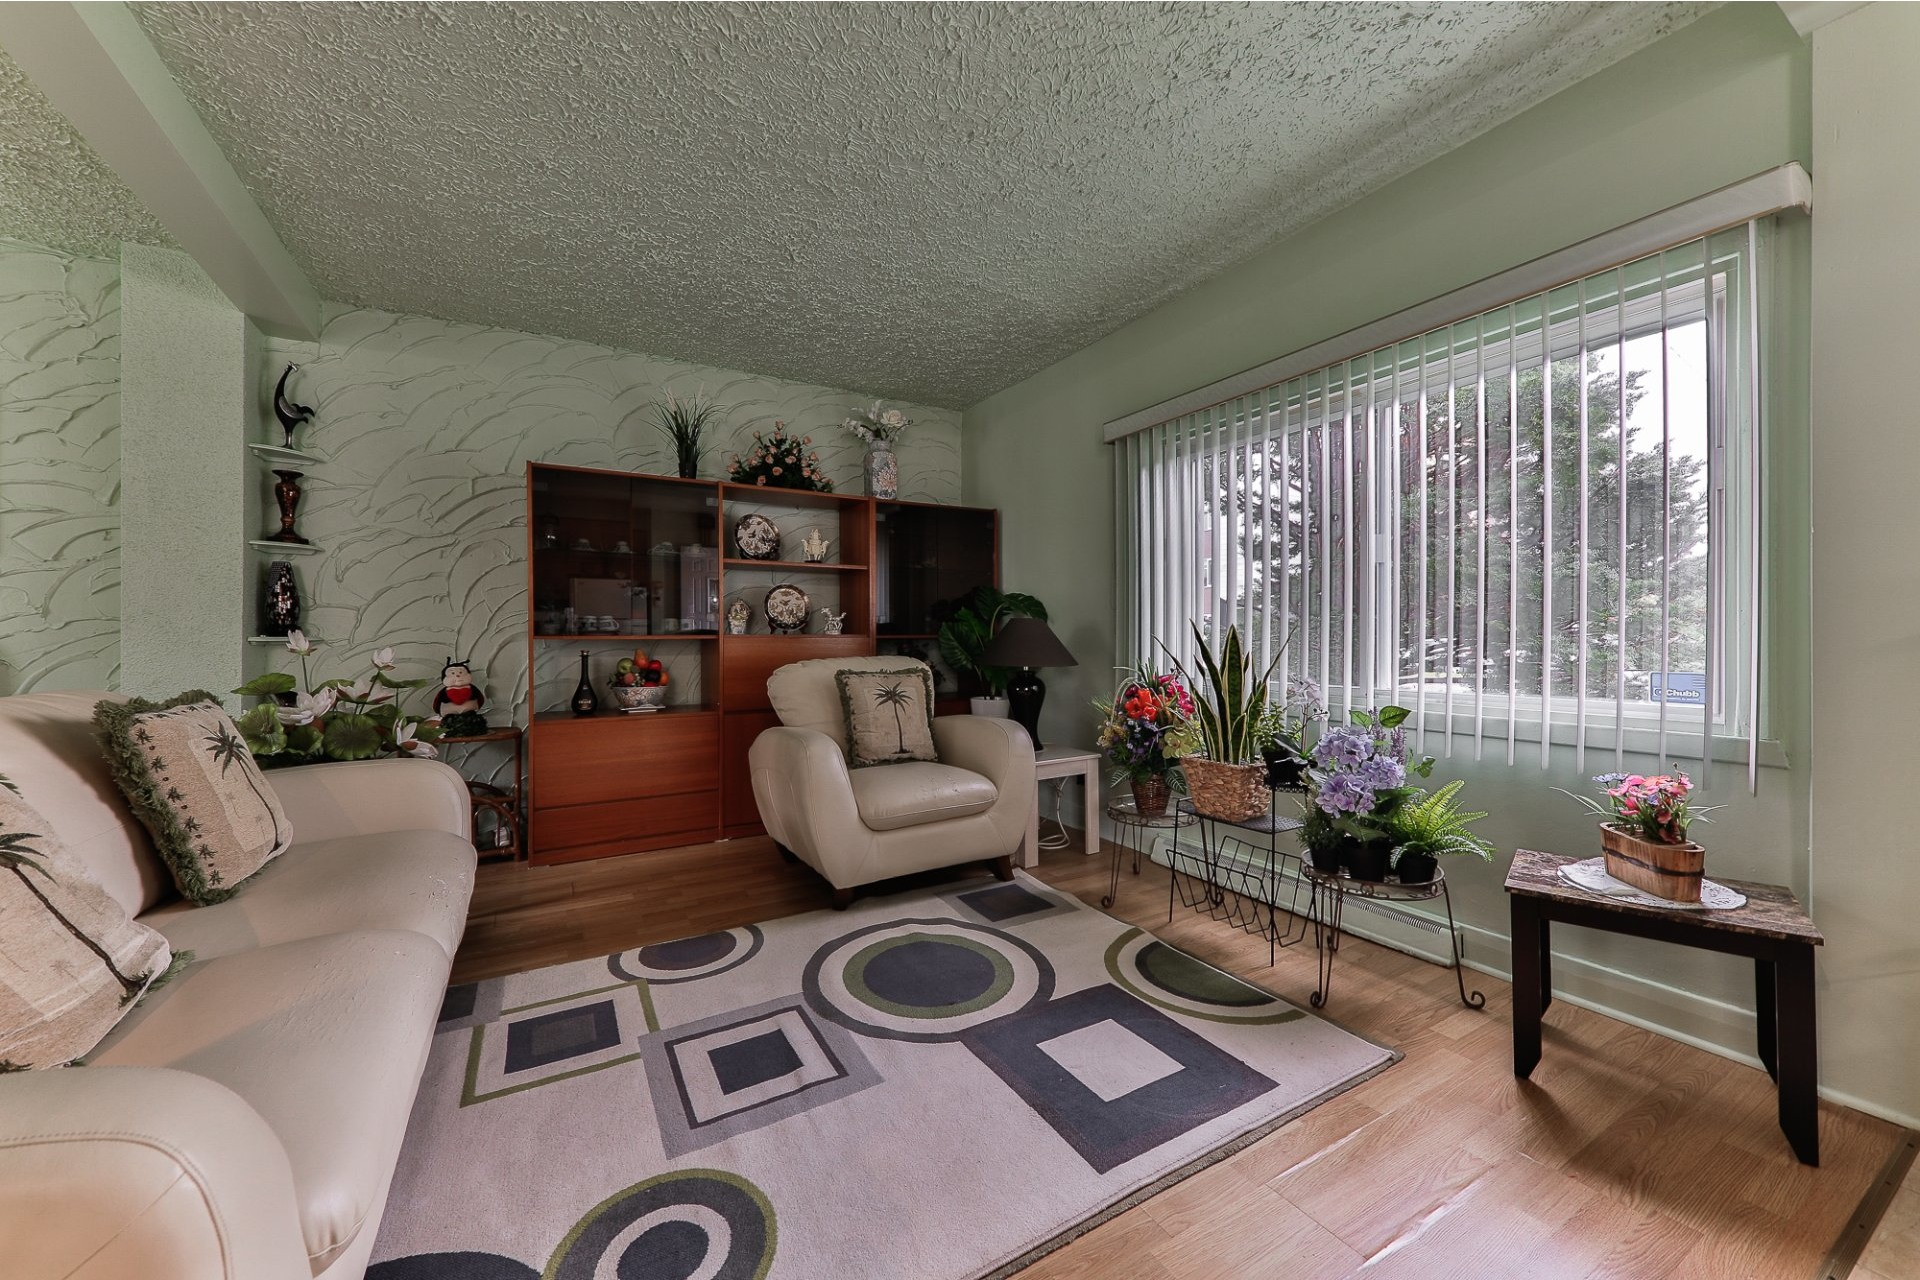 image 19 - House For sale Ahuntsic-Cartierville Montréal  - 8 rooms